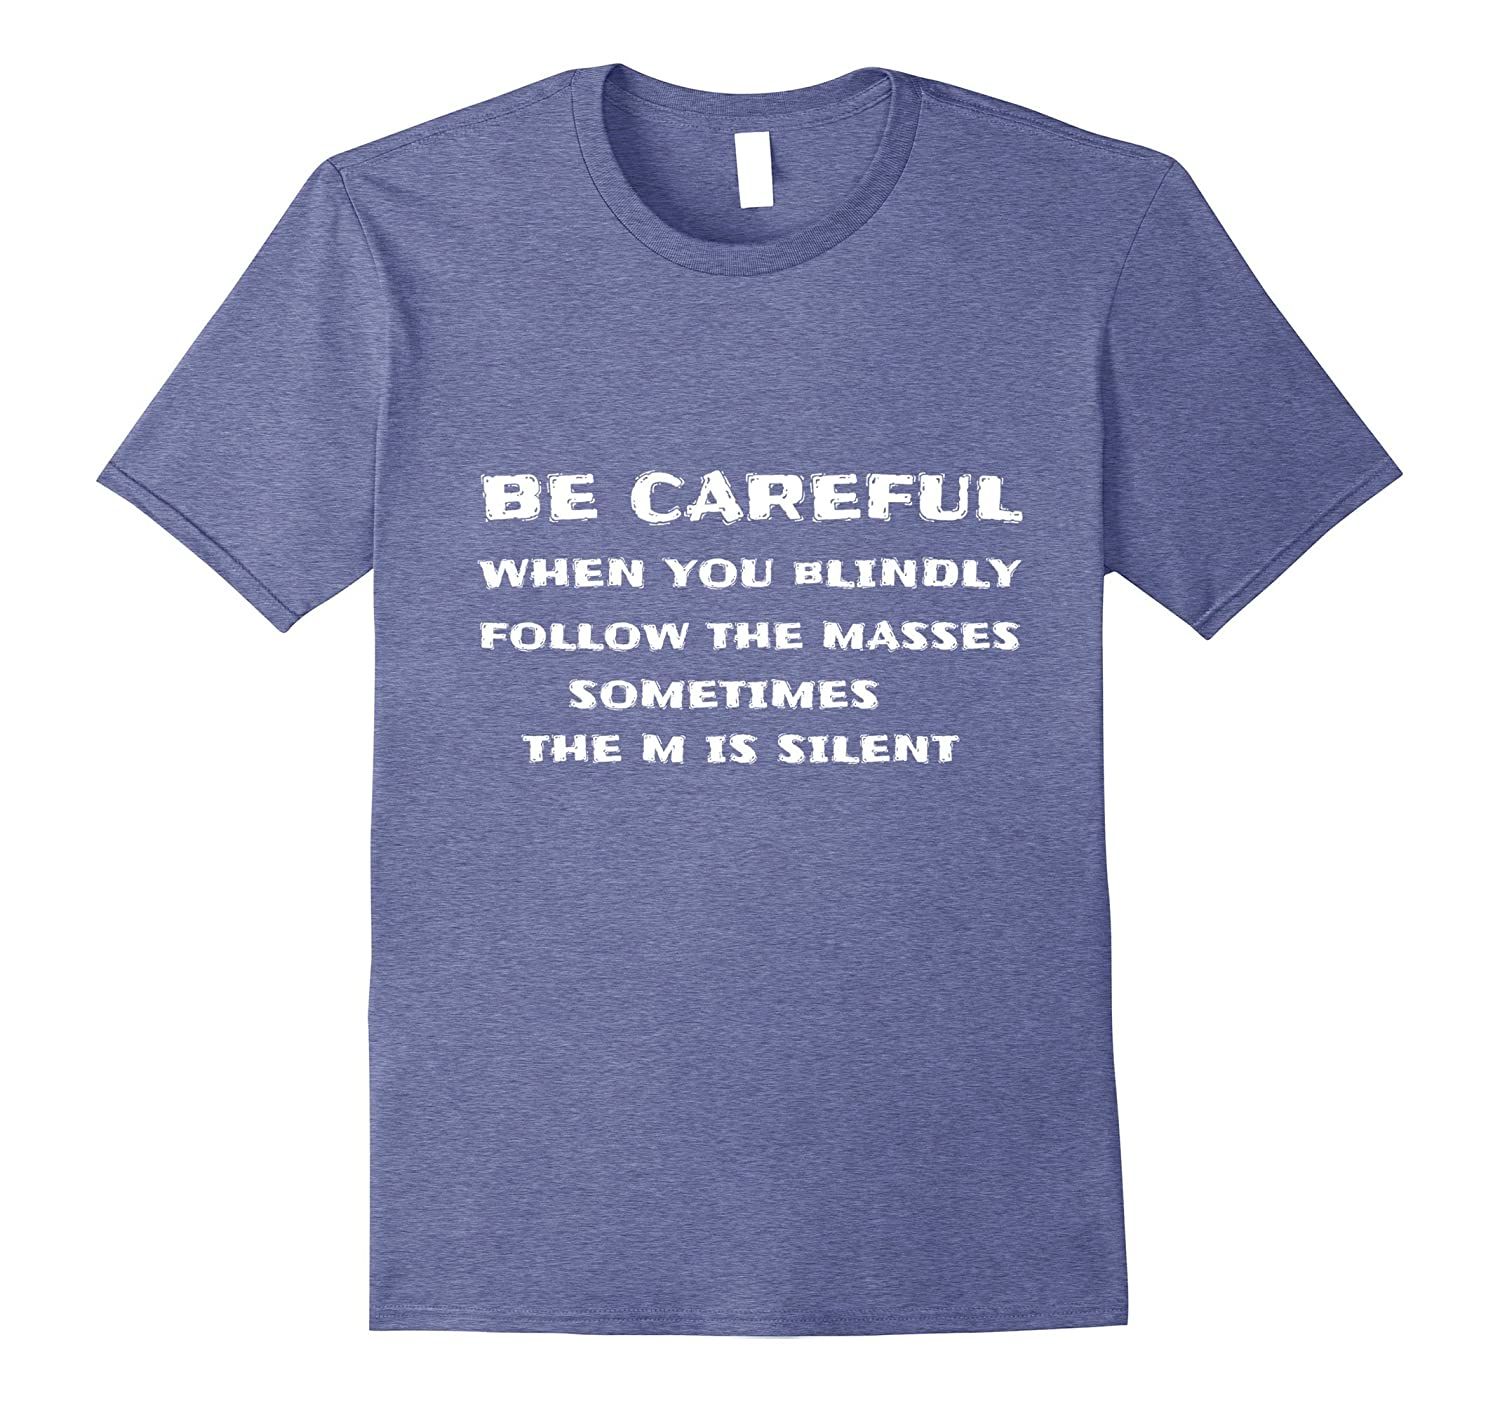 cdb6db968 Amazon.com: Funny Tee - Be Careful When You Blindly Follow the Masses:  Clothing